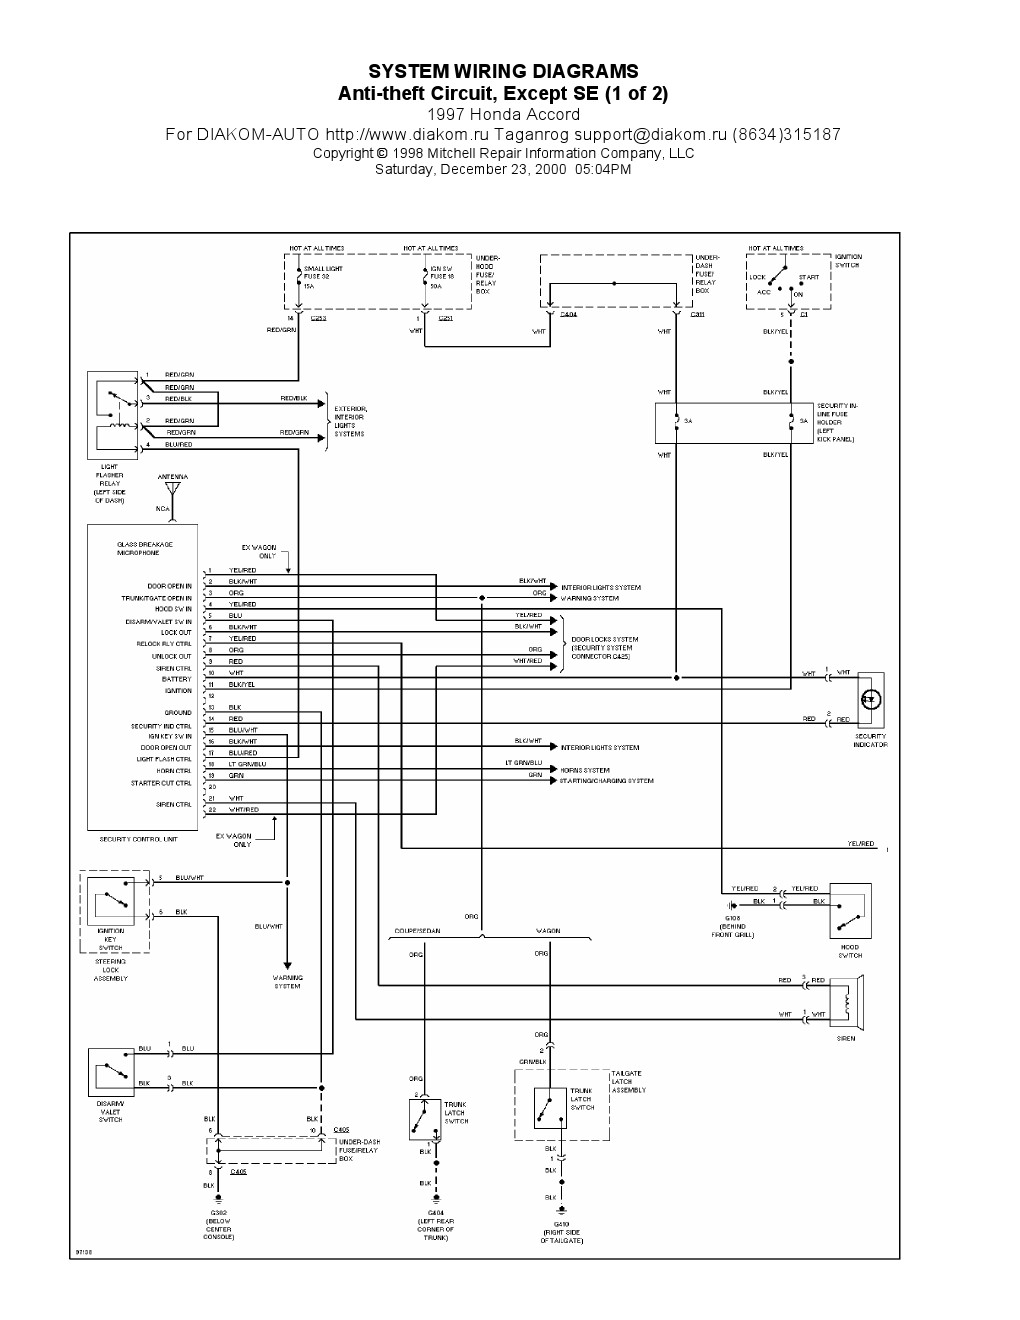 hight resolution of 1997 honda accord antitheft circuit system wiring diagrams